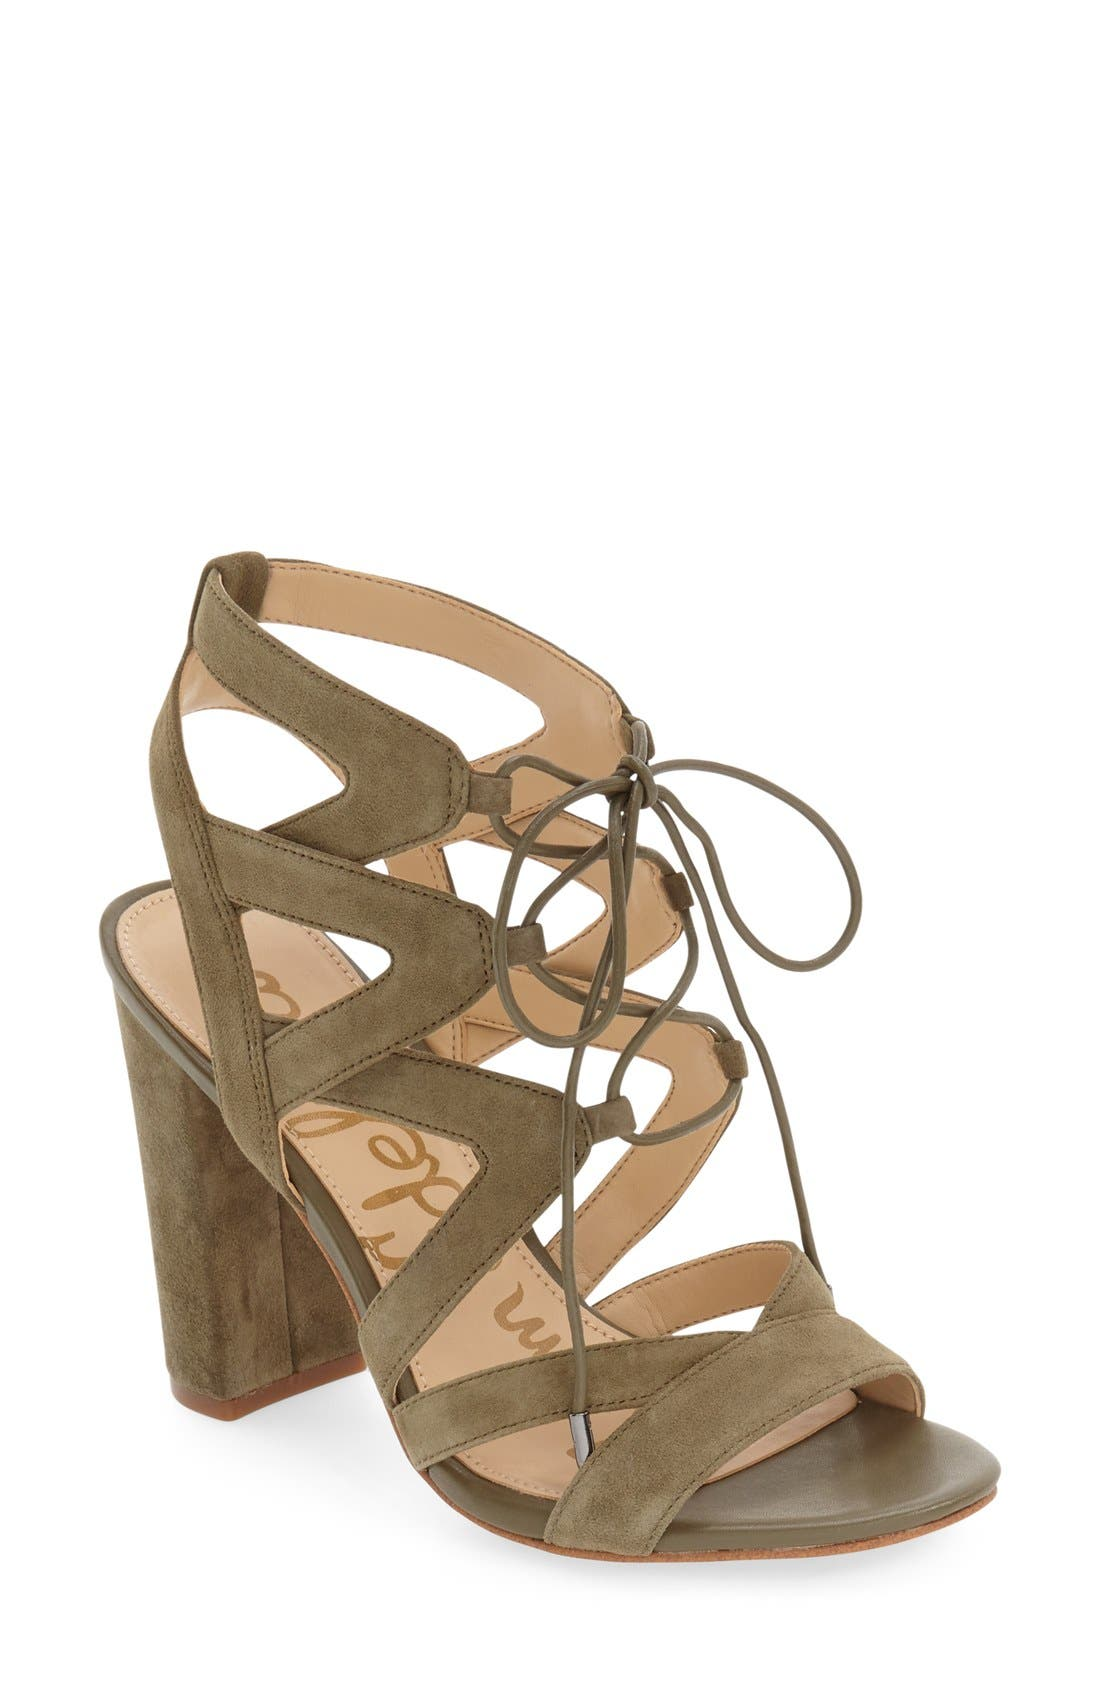 Main Image - Sam Edelman 'Yardley' Lace-Up Sandal (Women)